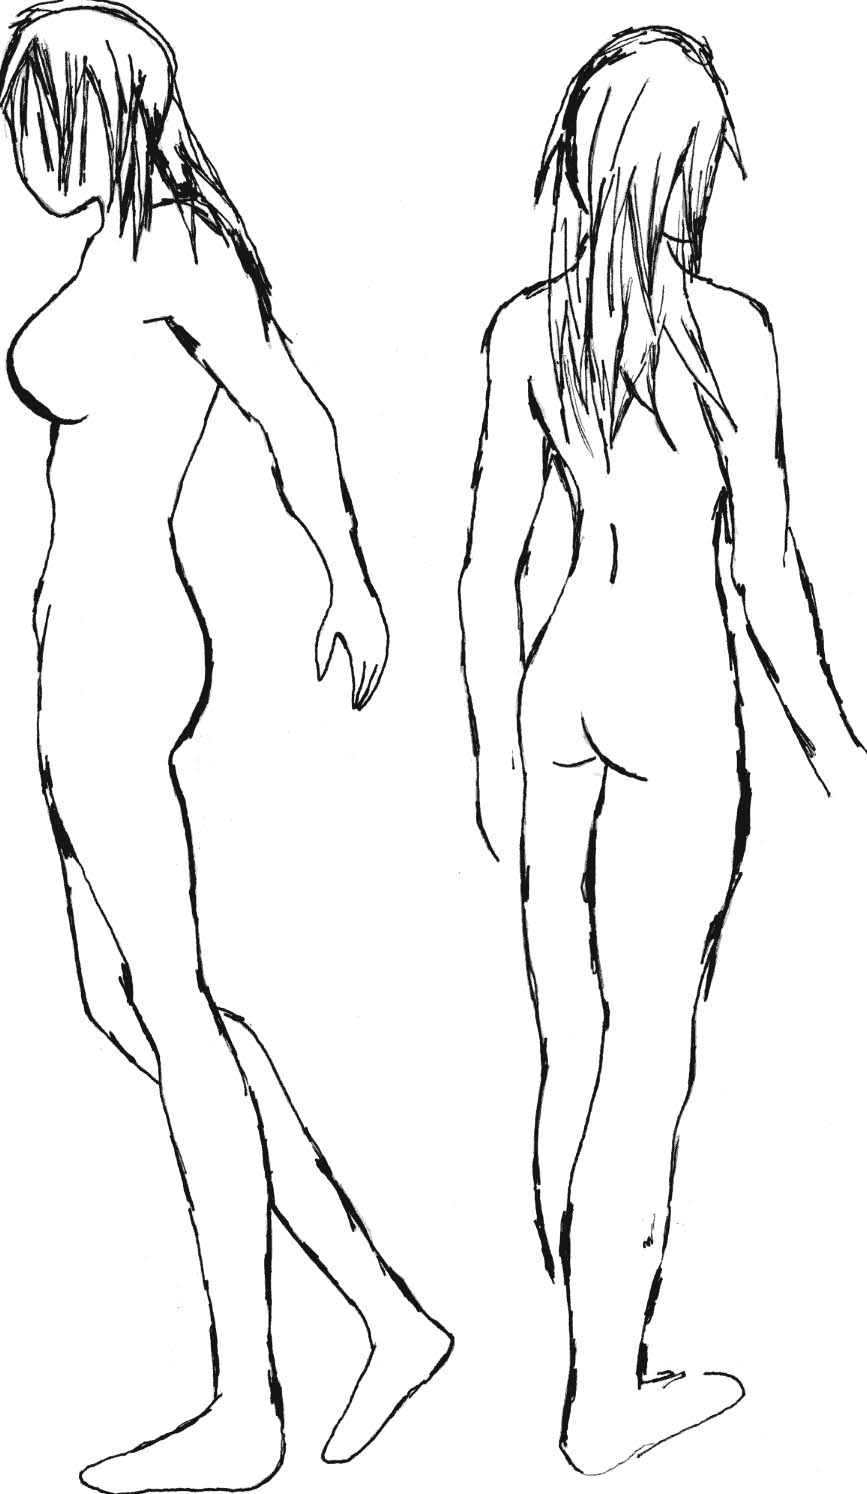 Girls Body Drawing at GetDrawings.com | Free for personal use Girls ...